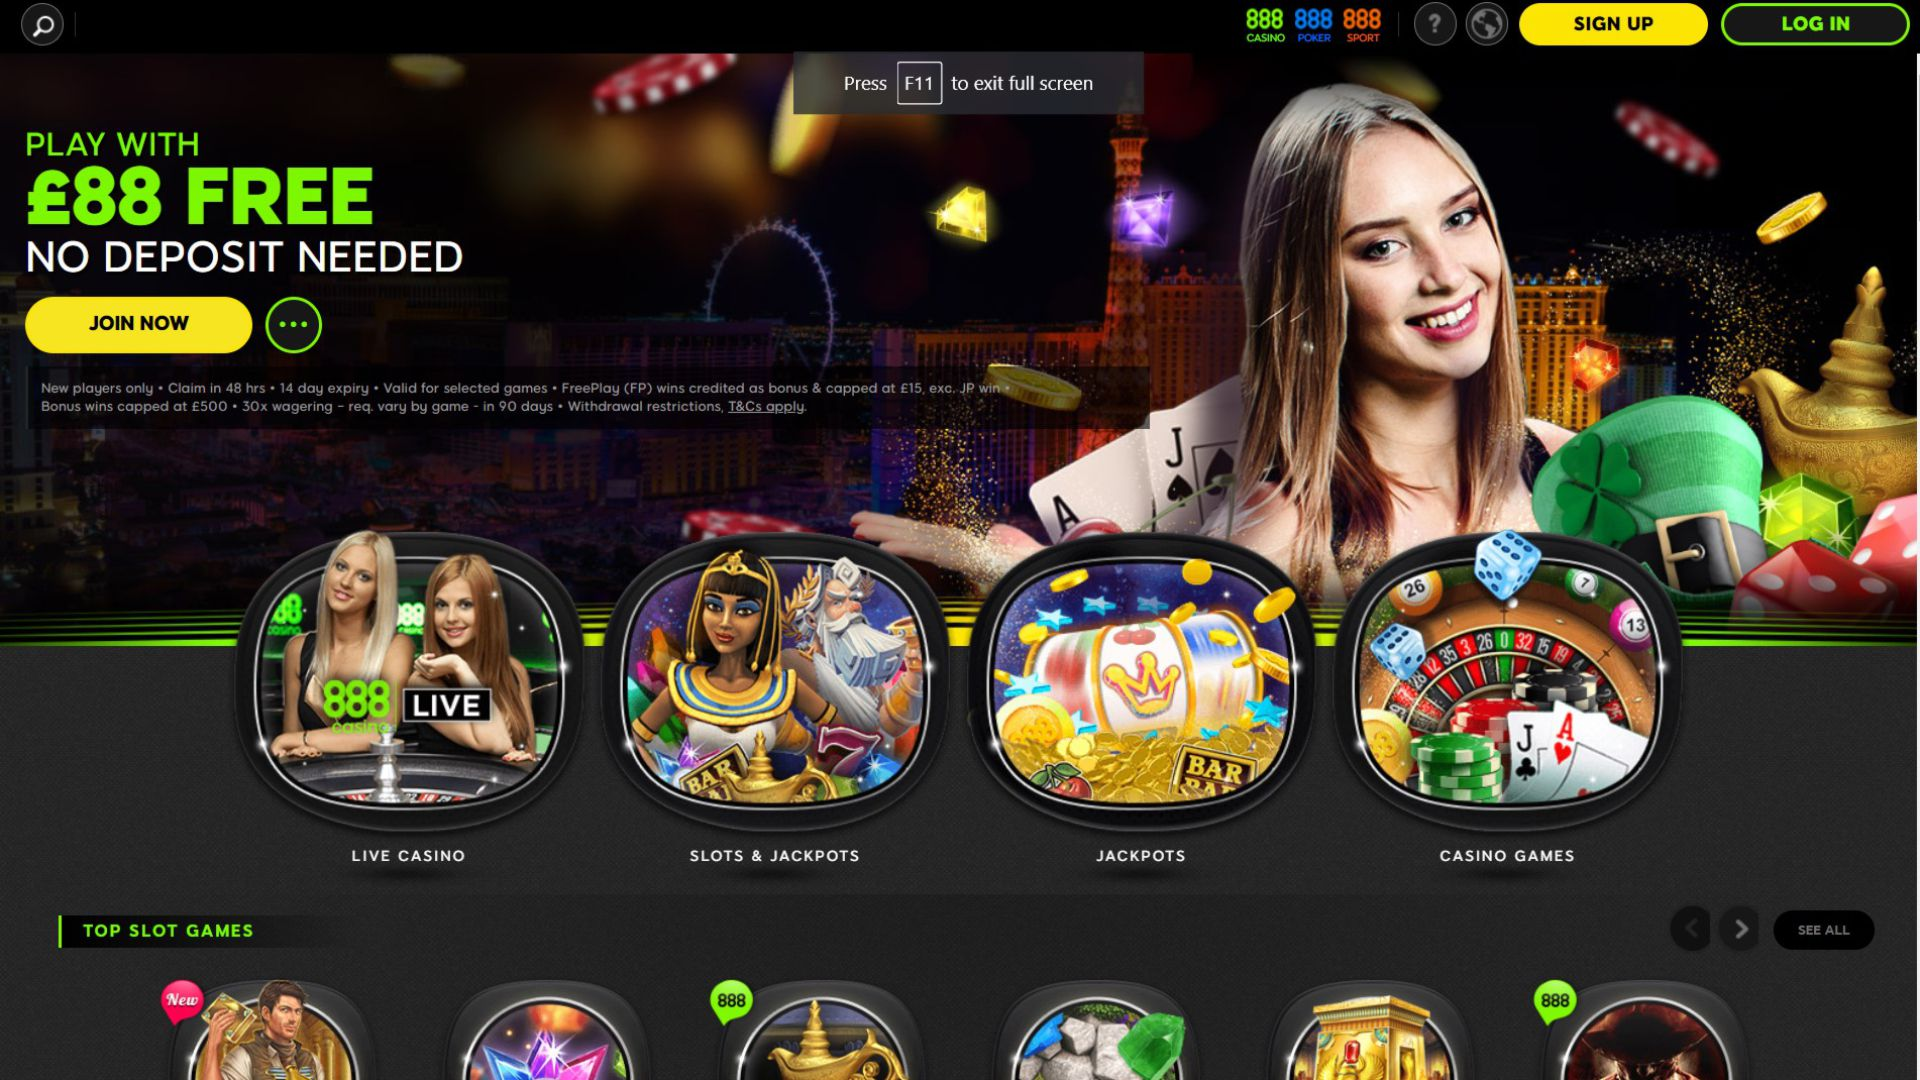 888 Casino Casino screenshot